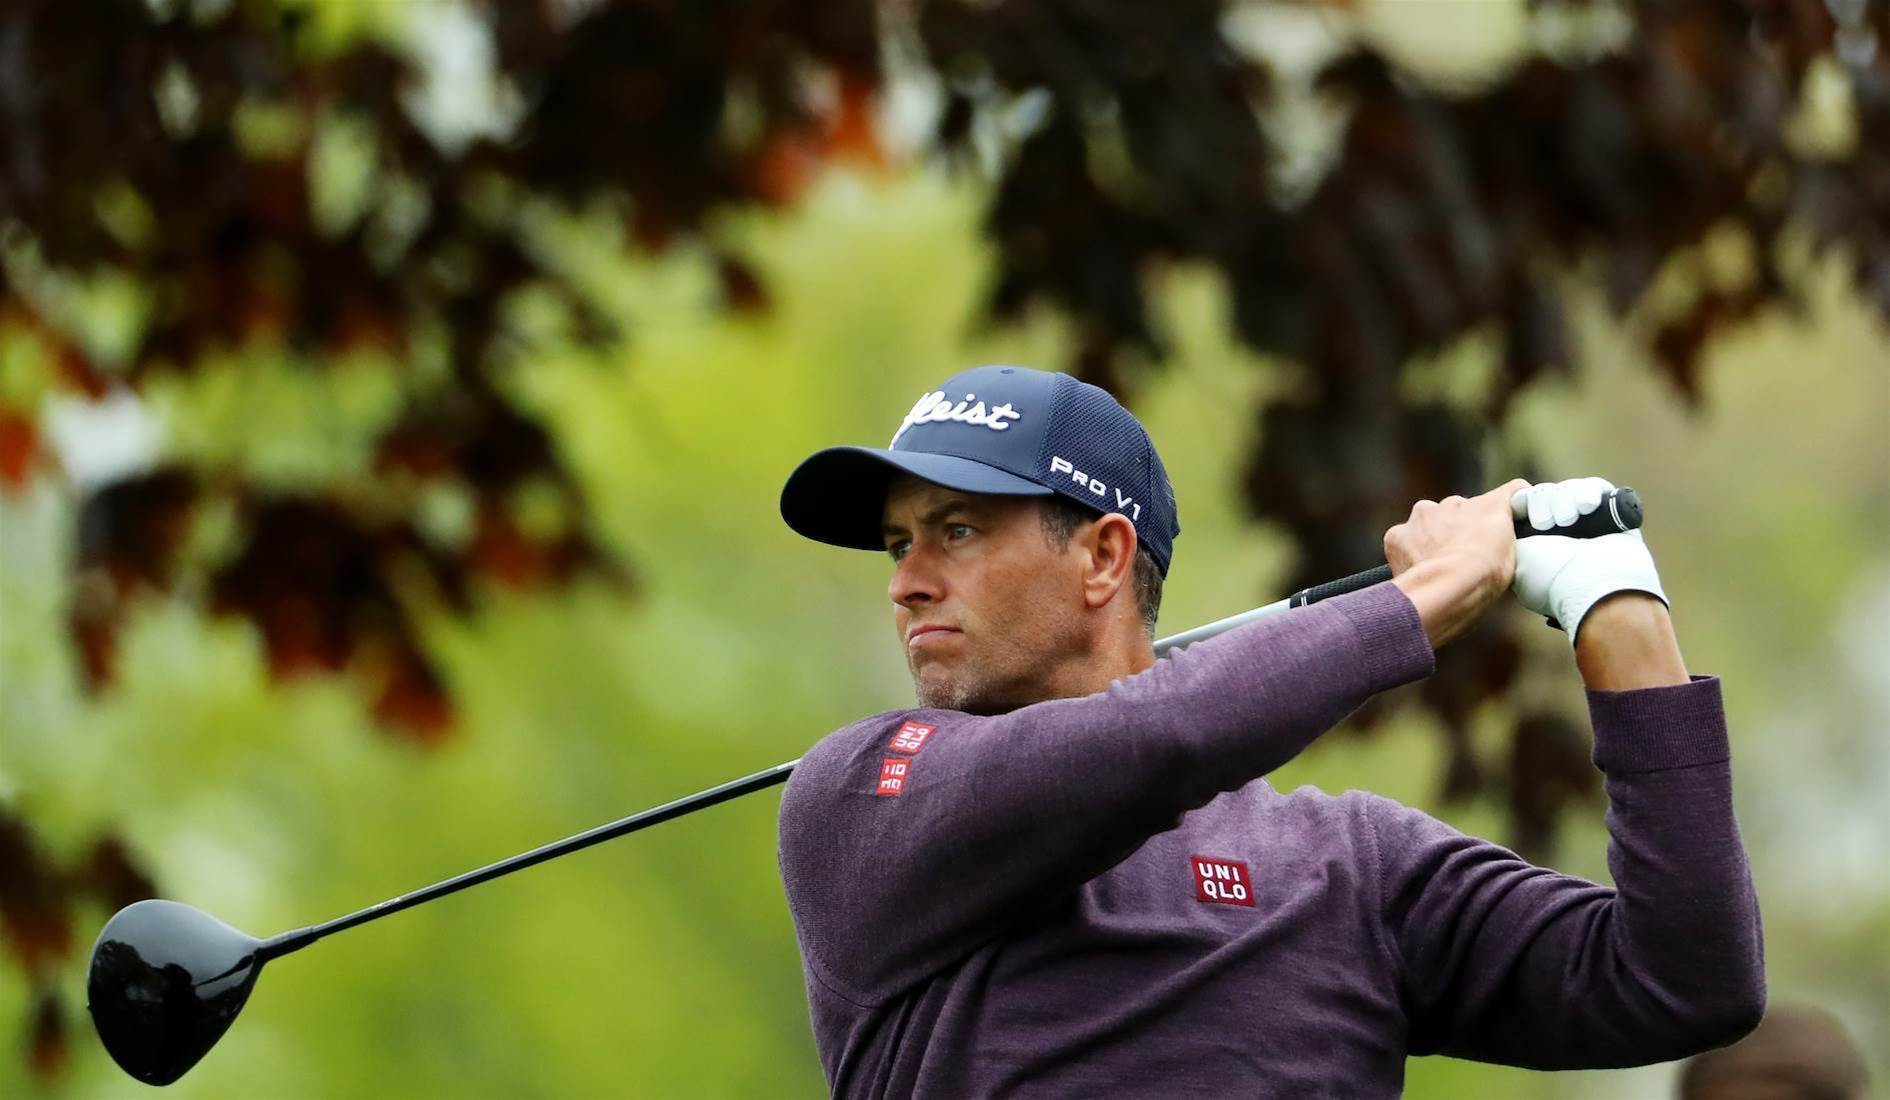 Improving Scott a major chance at Bethpage